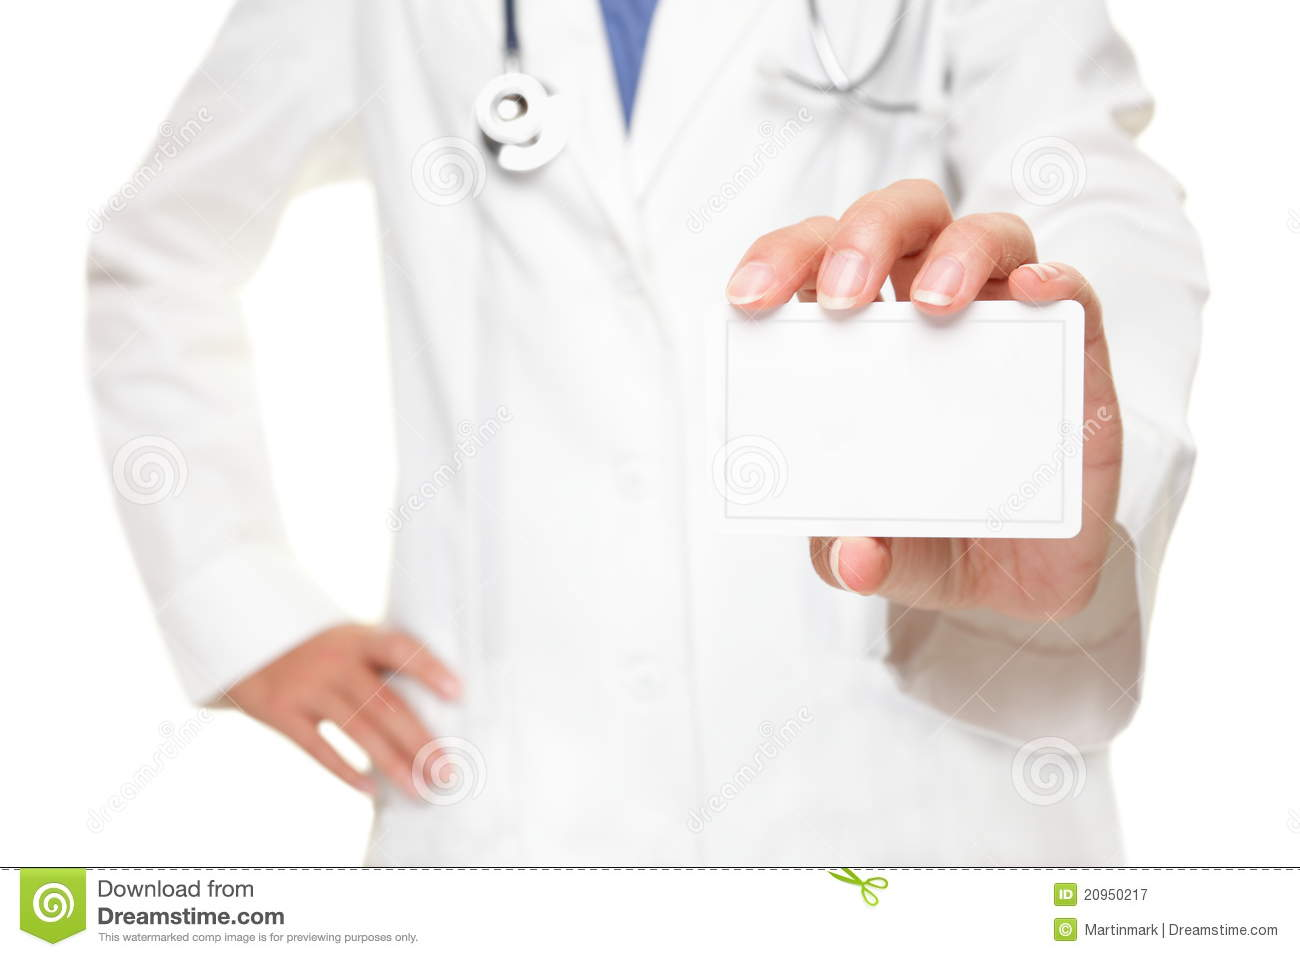 Medical Doctor Business Card Sign Stock Image - Image of isolated ...